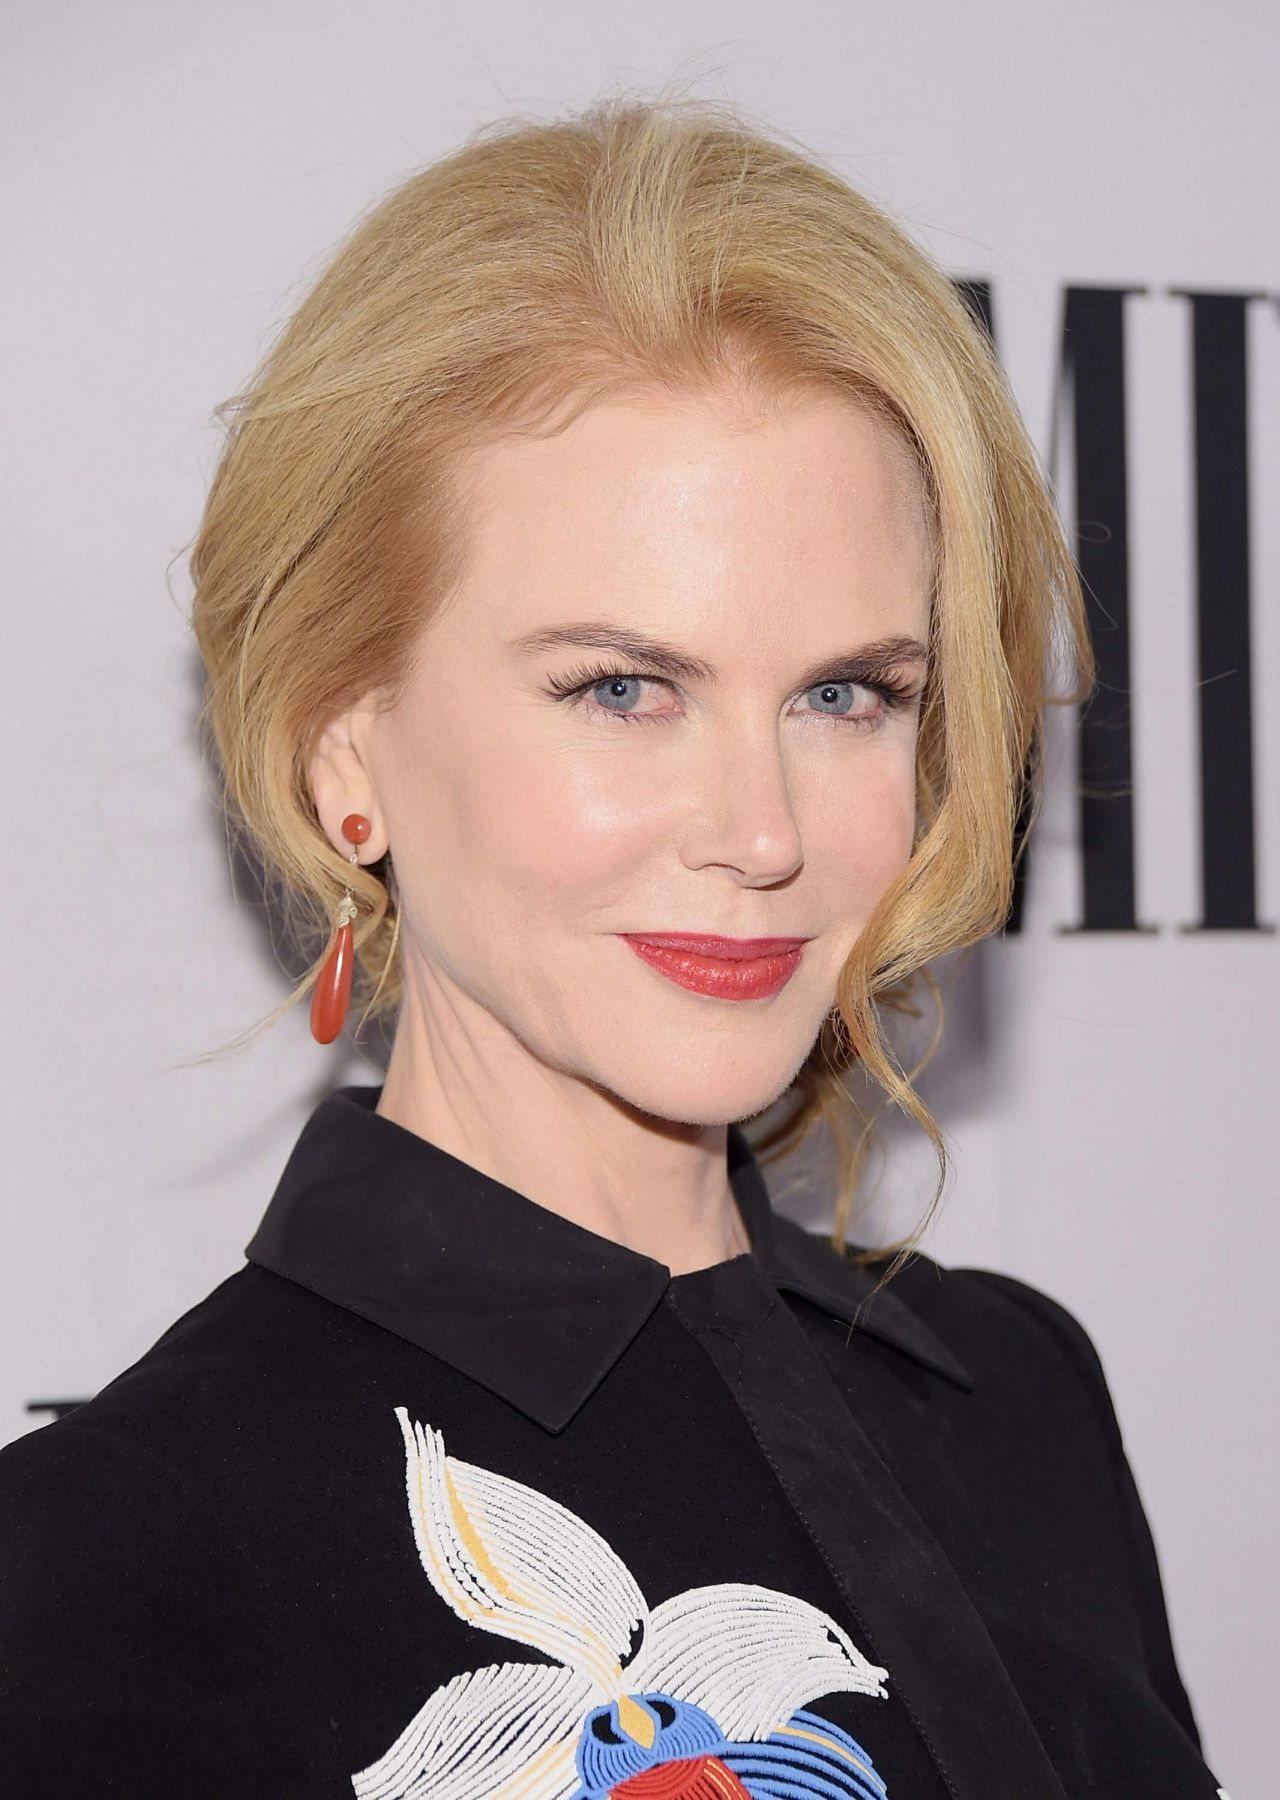 nicole-kidman-2014-bmi-country-awards-in-nashville_4